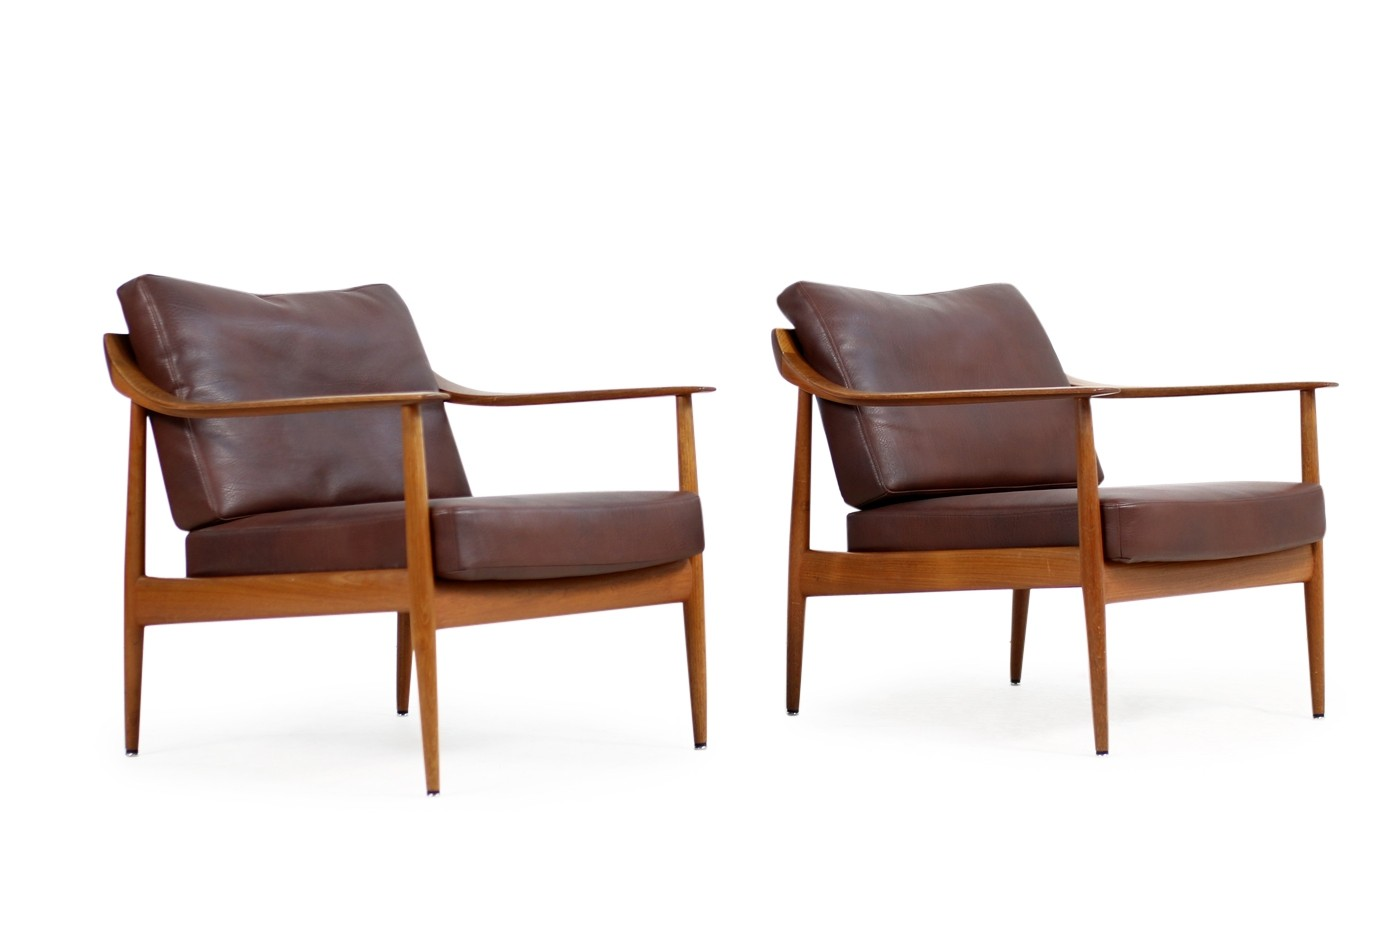 Knoll Sessel 50er Pair Of 1960s Teak Leather Easy Chairs Knoll Antimott Mid Century